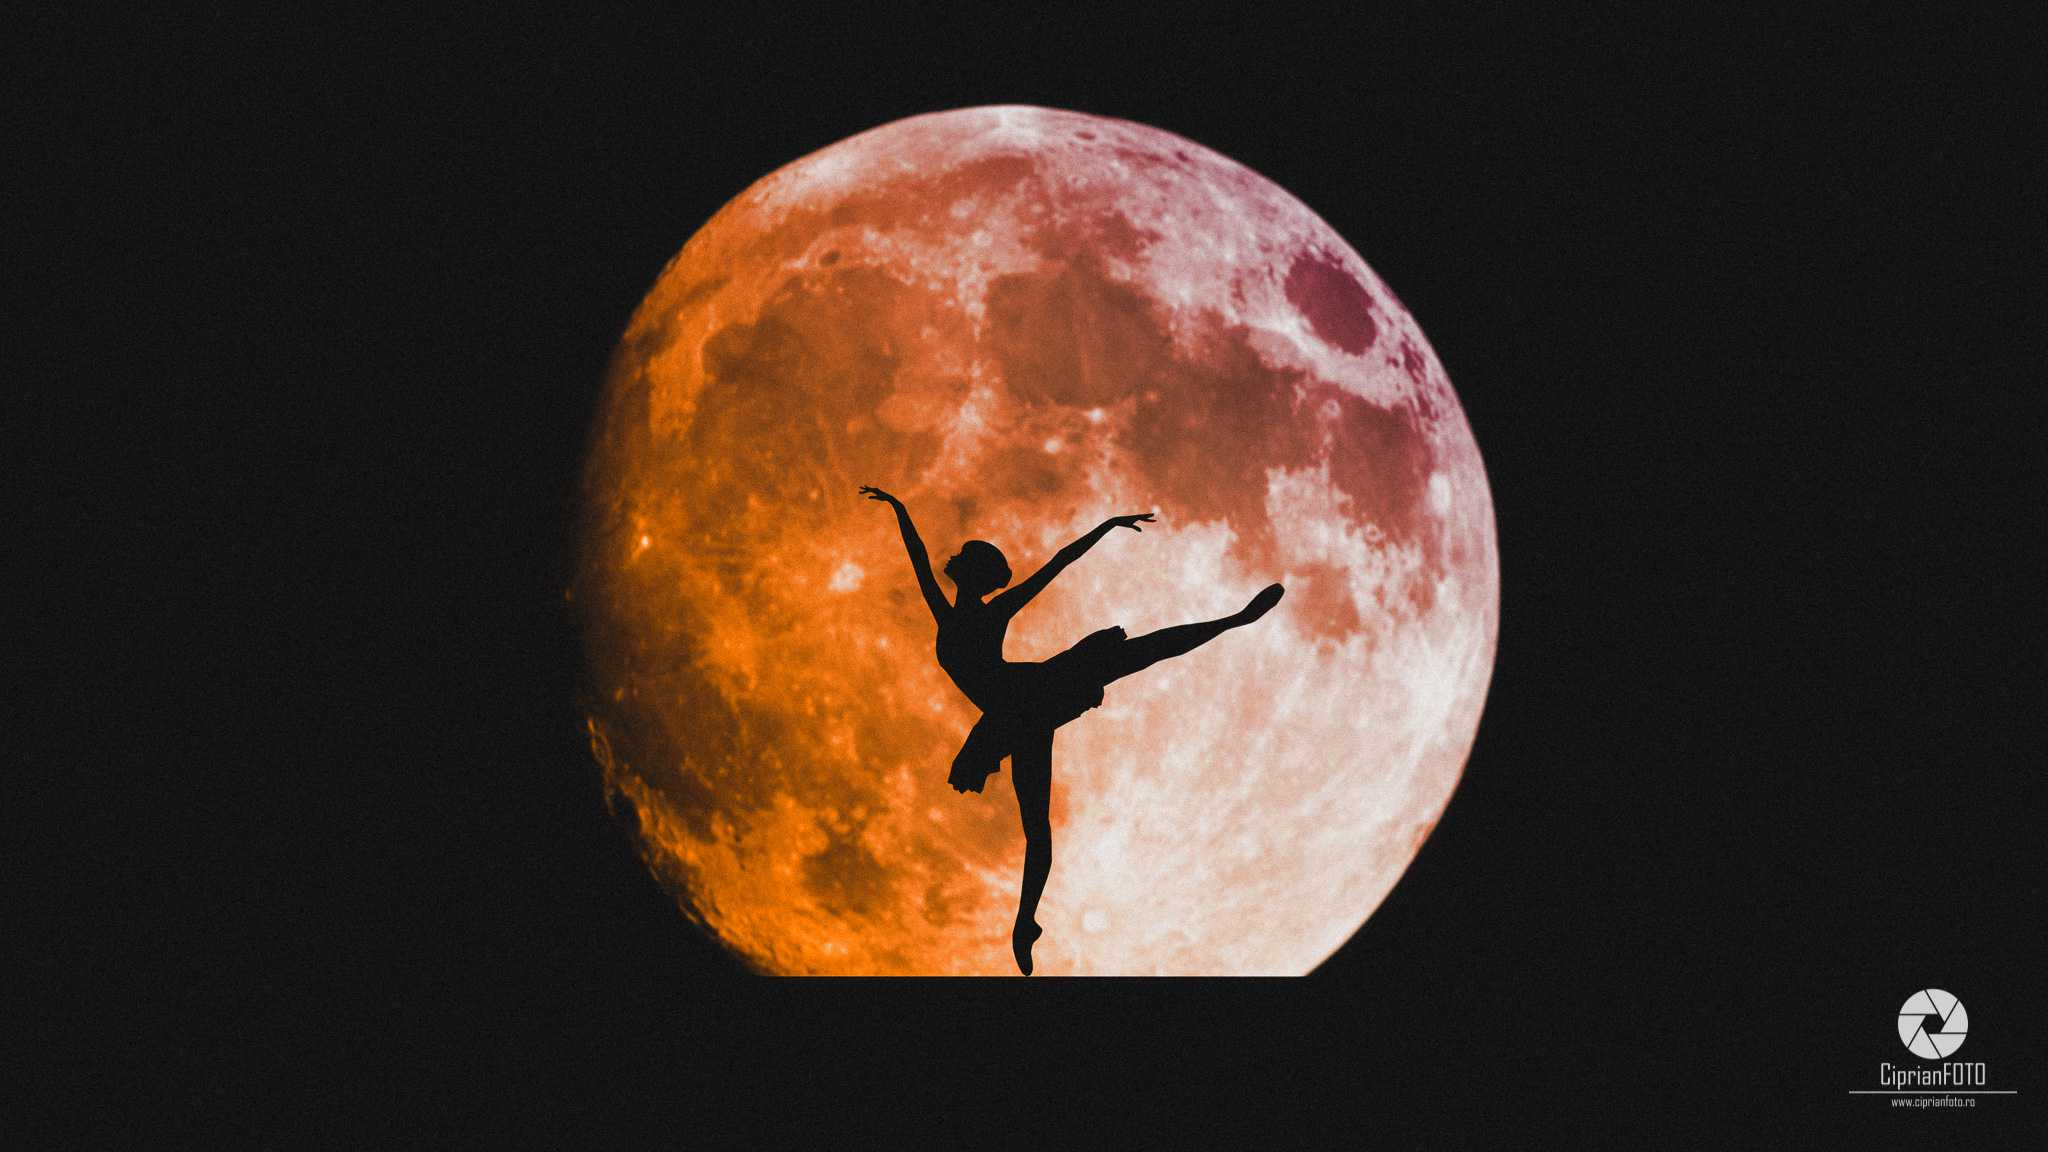 Super Blue Blood Moon And Ballerina, Photoshop Manipulation Tutorial, CiprianFOTO